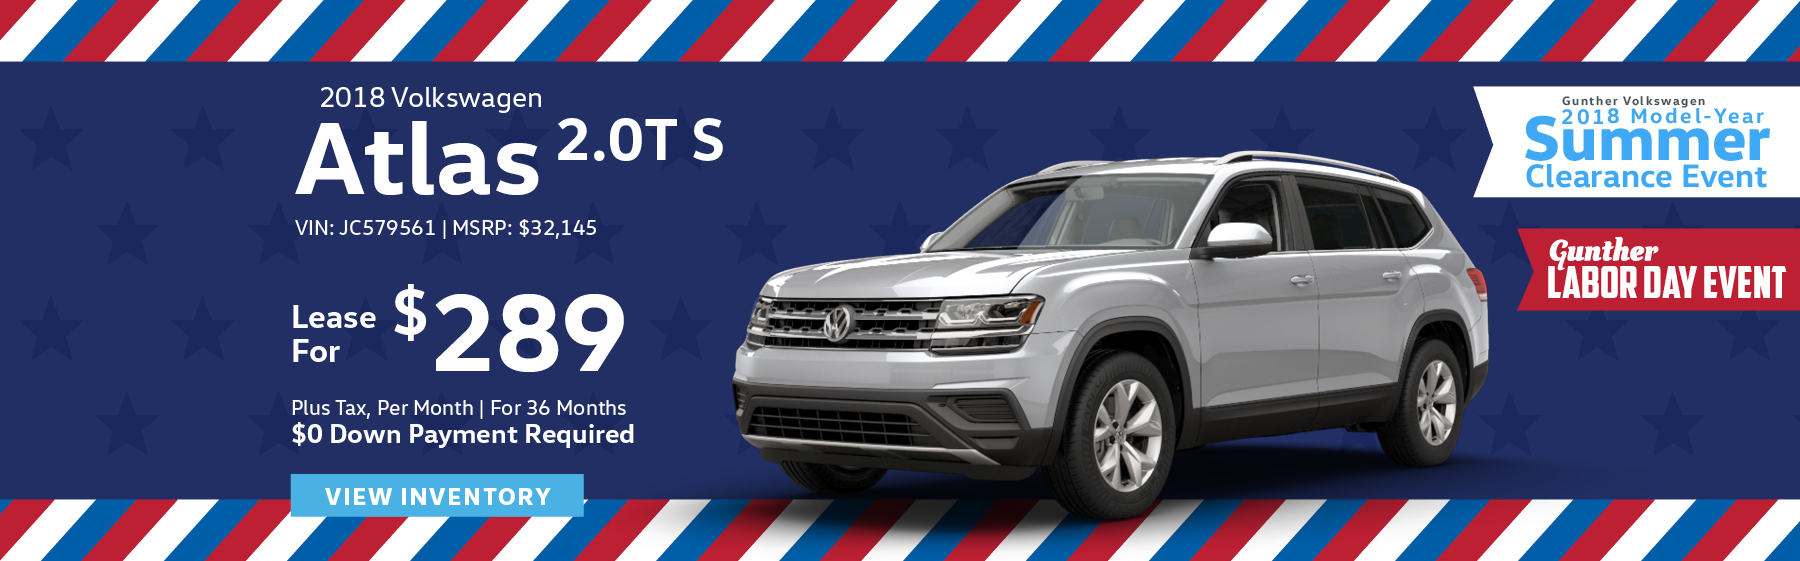 Lease the 2018 Volkswagen Atlas 2.0T S for $289 plus tax for 36 months. $0 Down payment required.